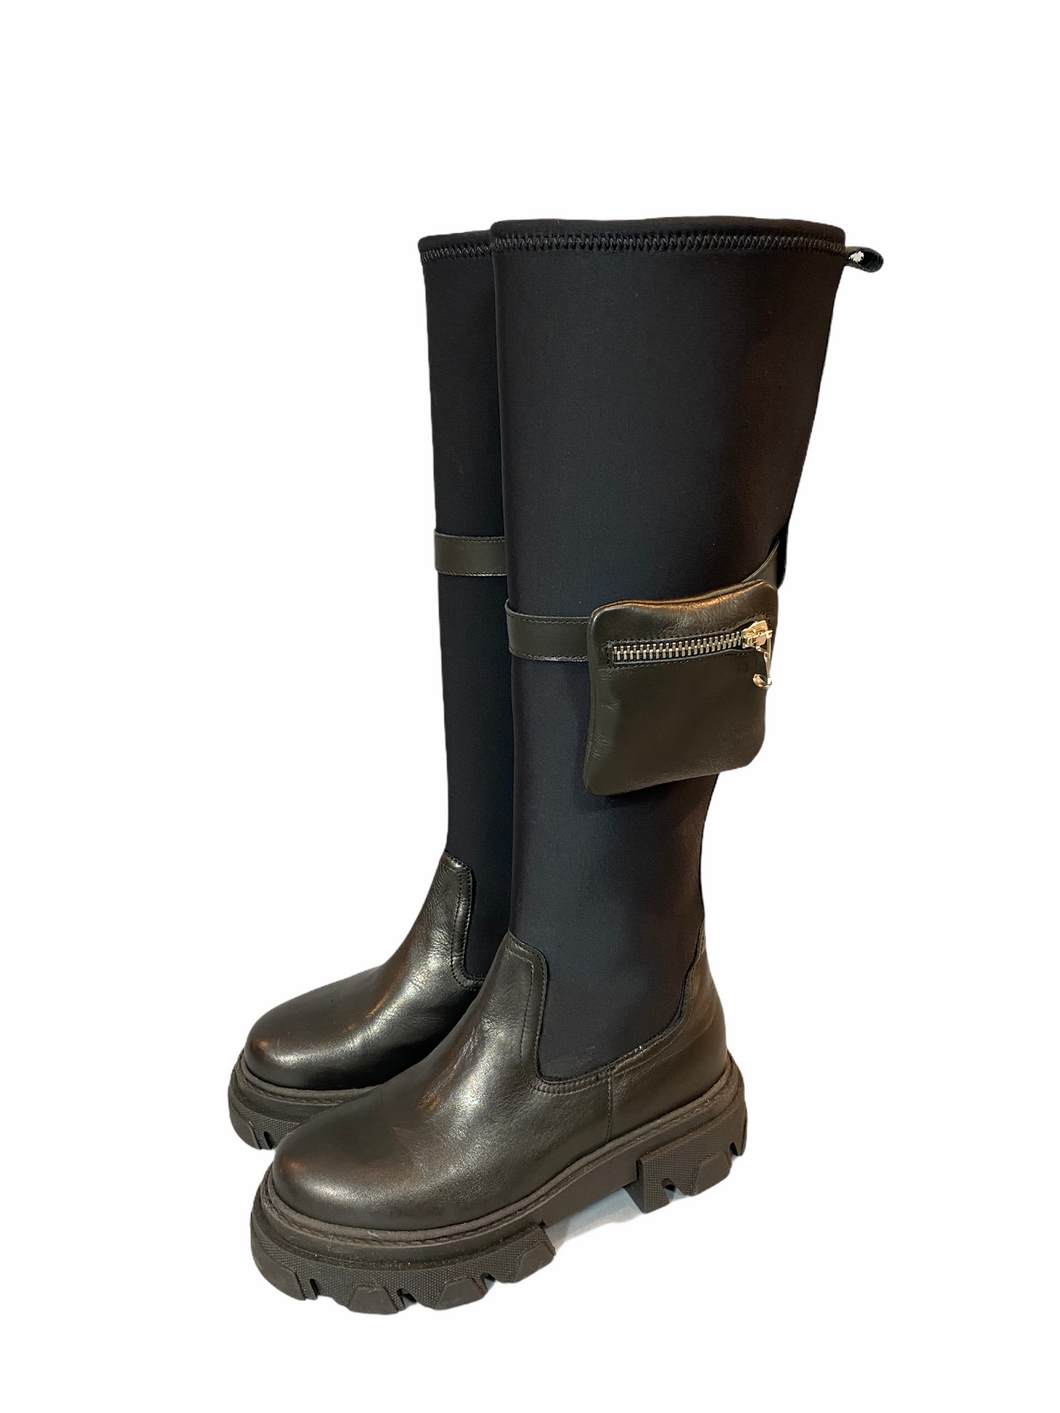 Black Leather boot with neopreen shaft